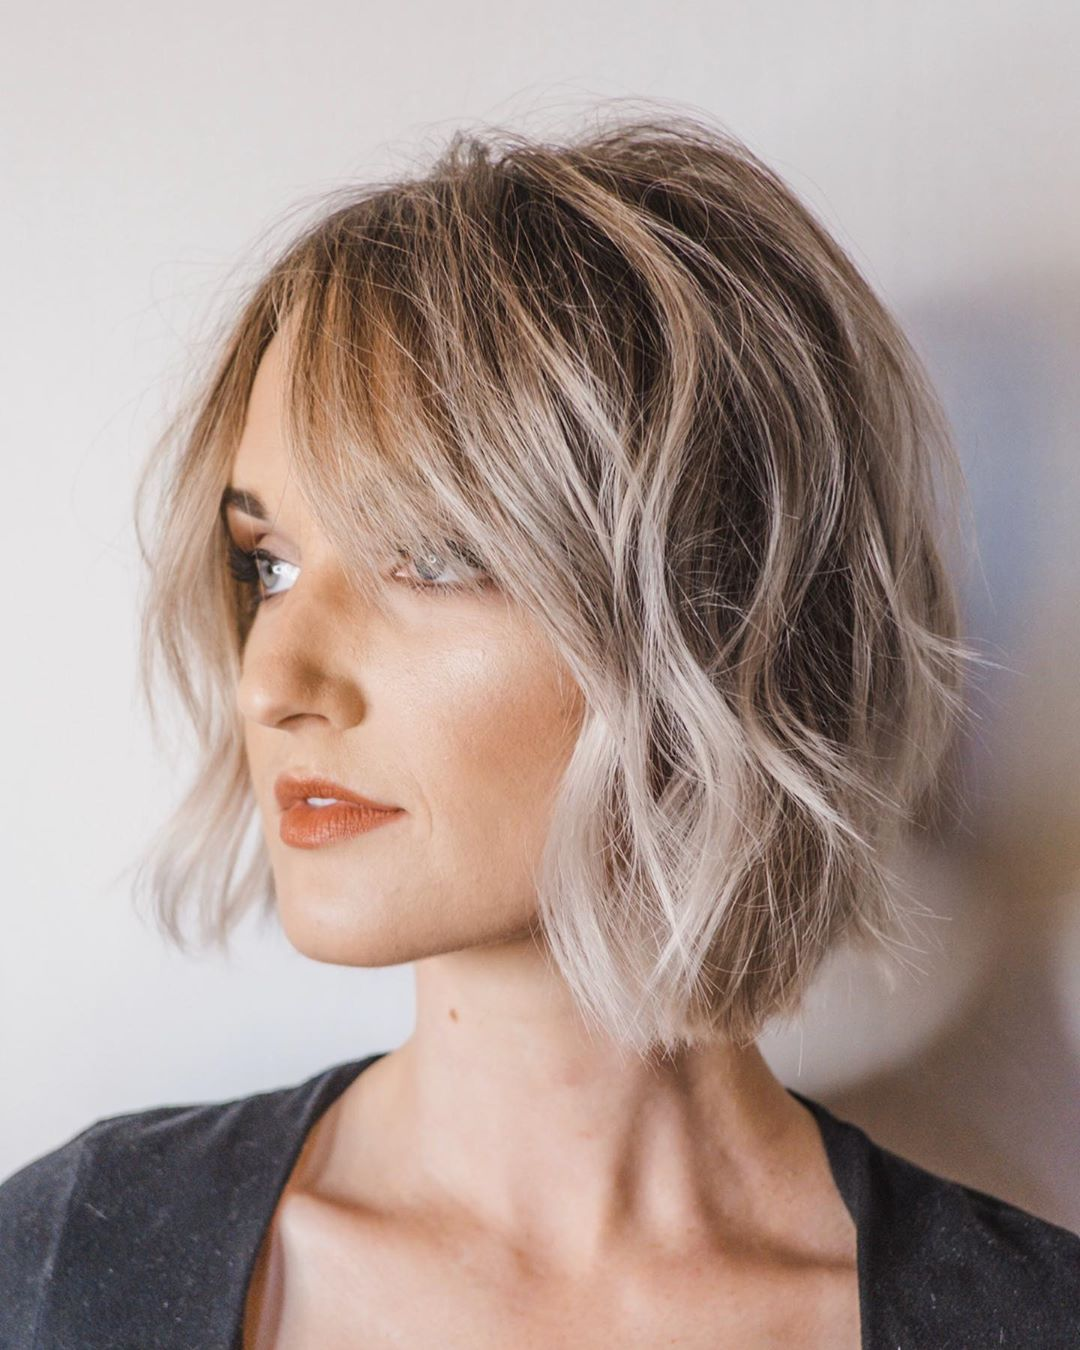 Textured Bob with Side-swept Bangs